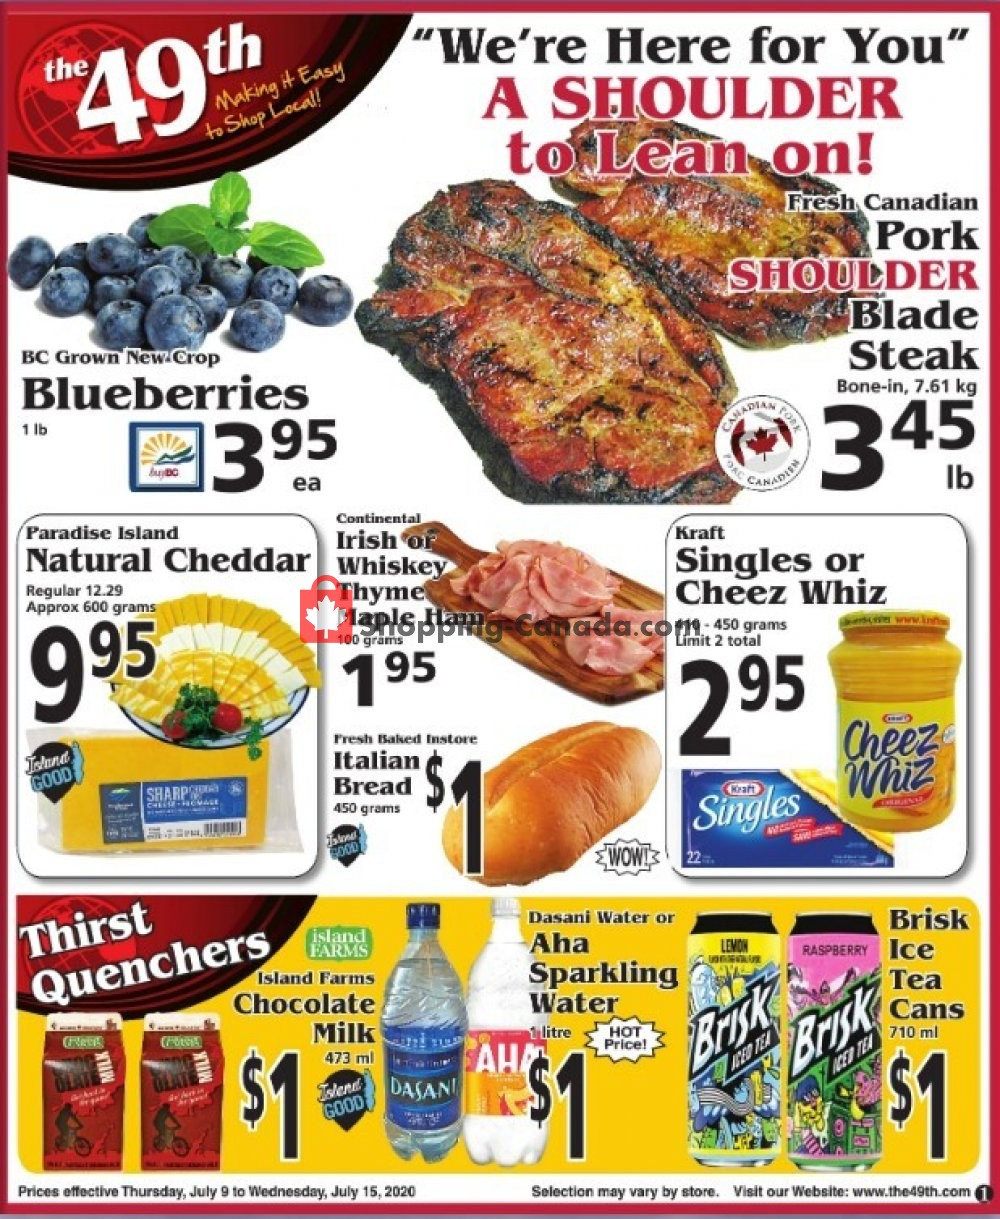 Flyer The 49th Parallel Grocery Canada - from Thursday July 9, 2020 to Wednesday July 15, 2020